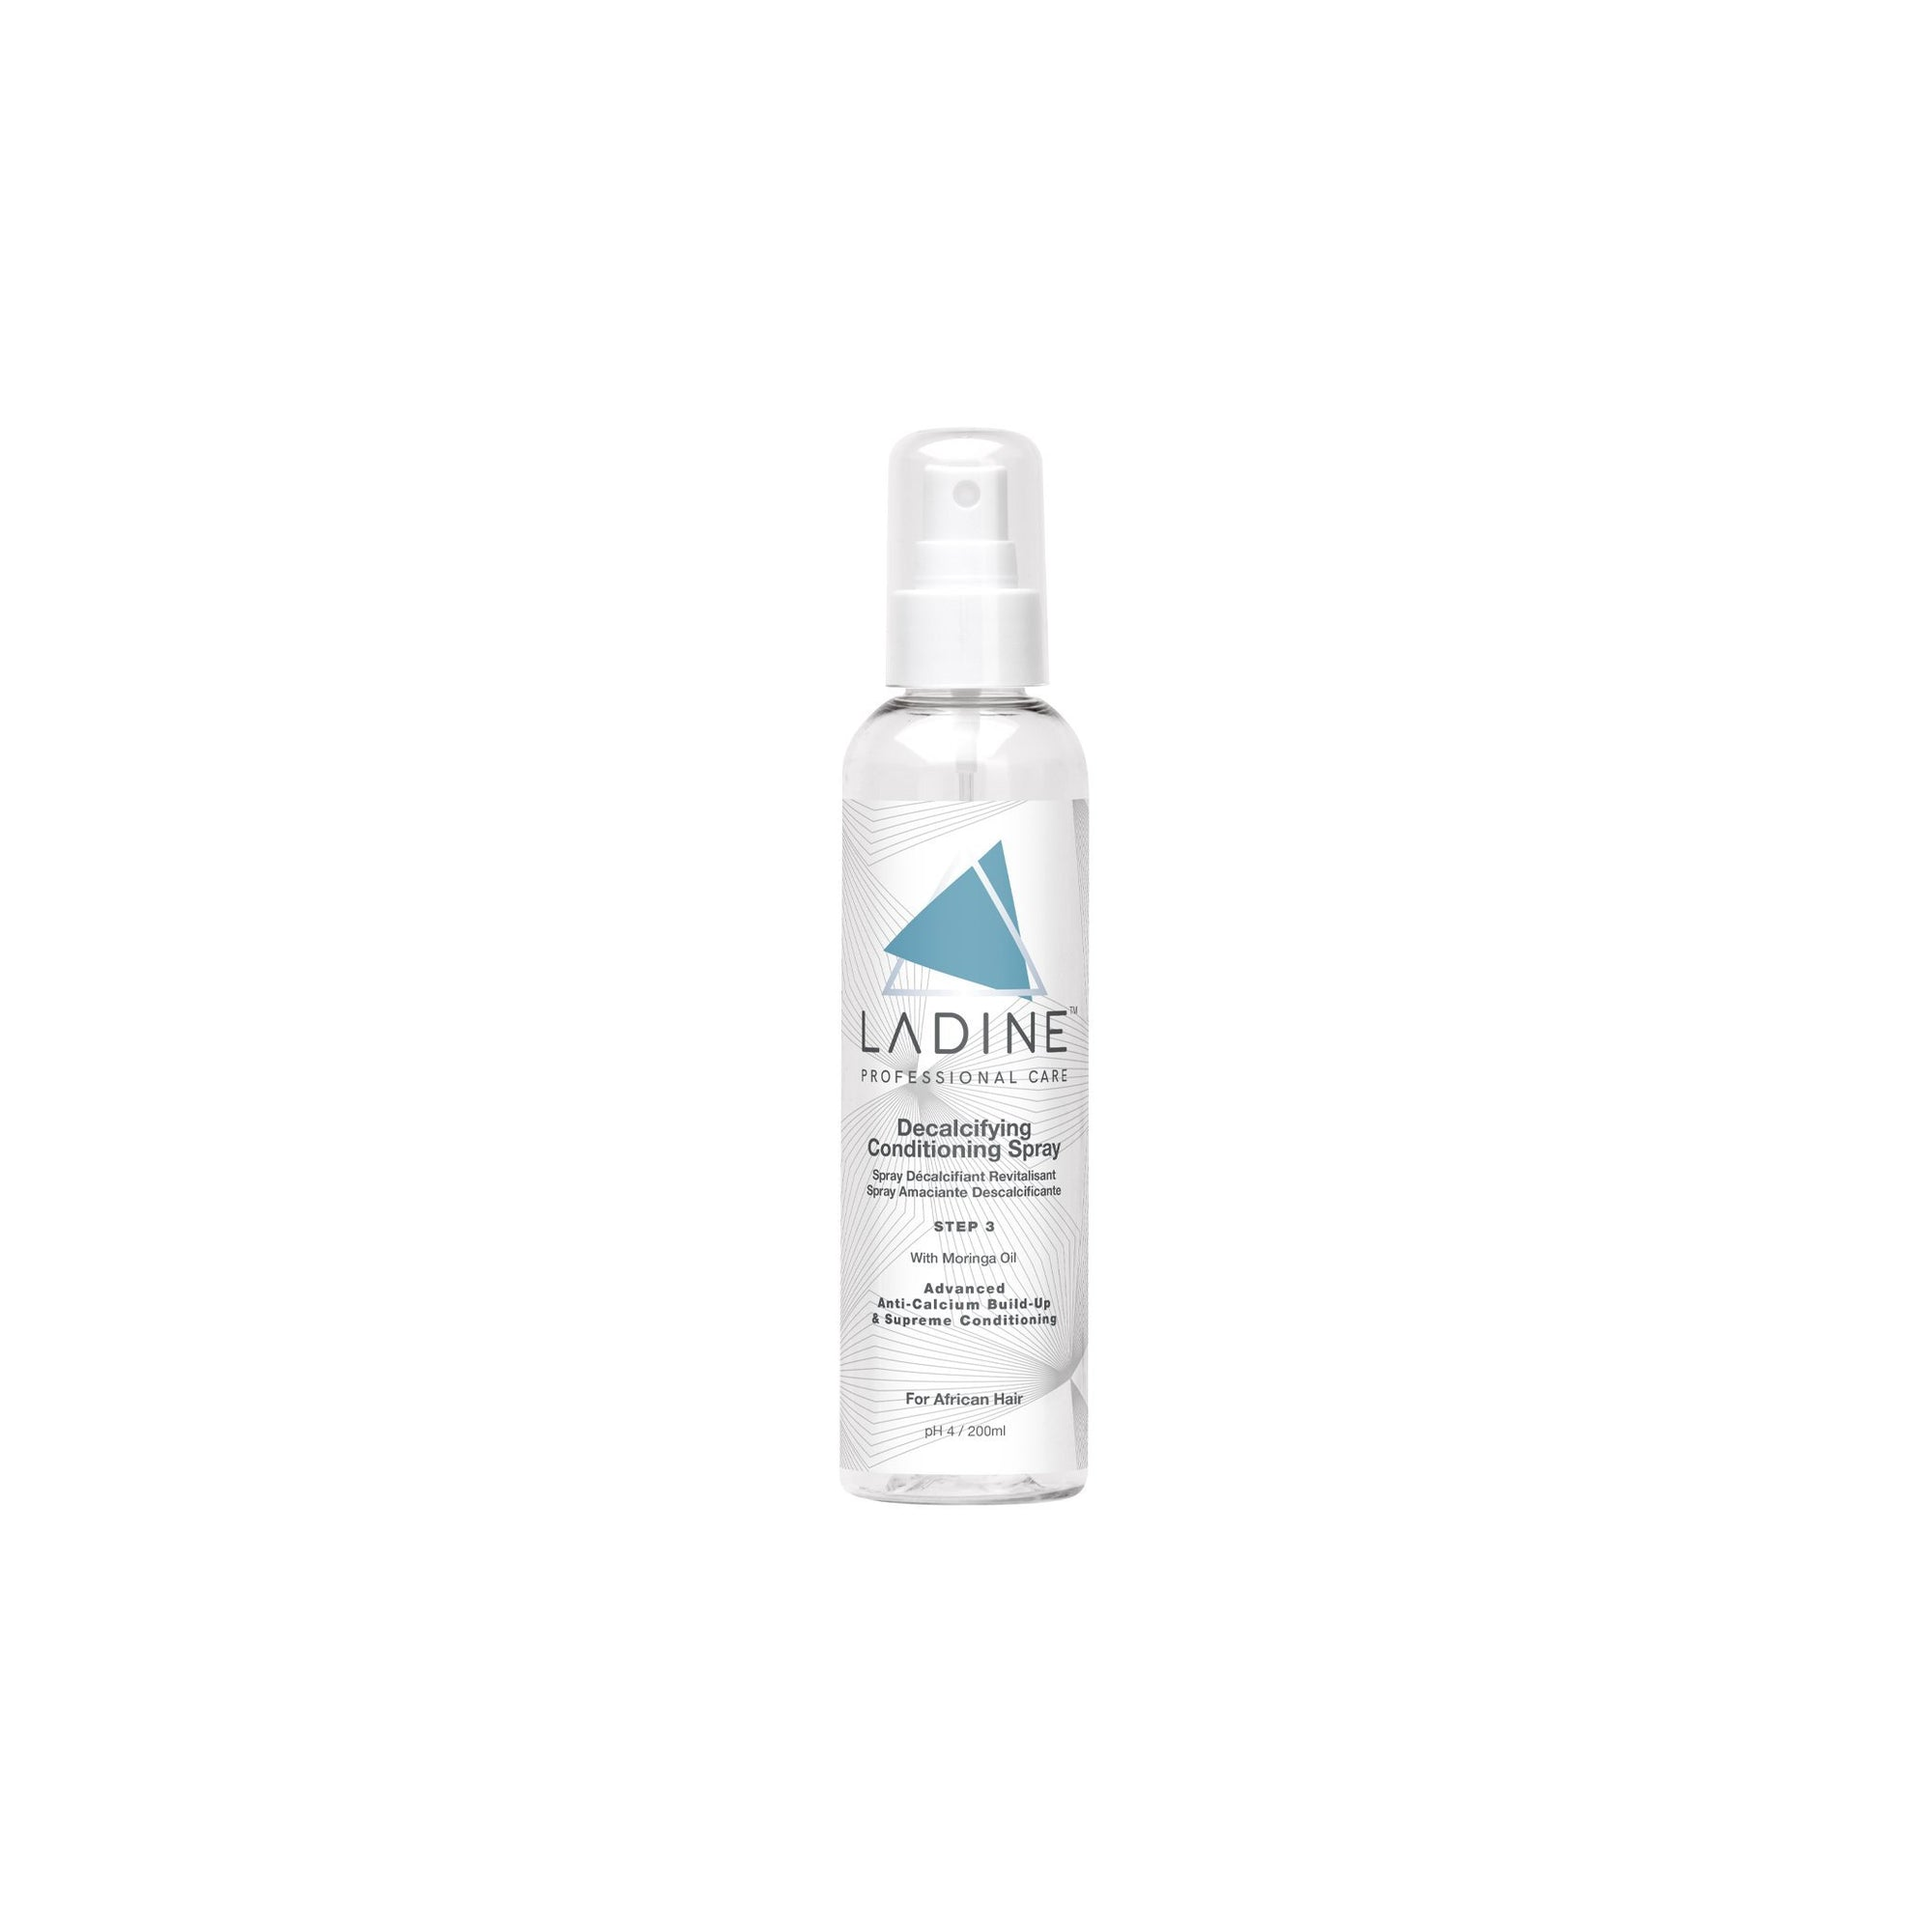 Ladine Decalcifying Conditioning Spray